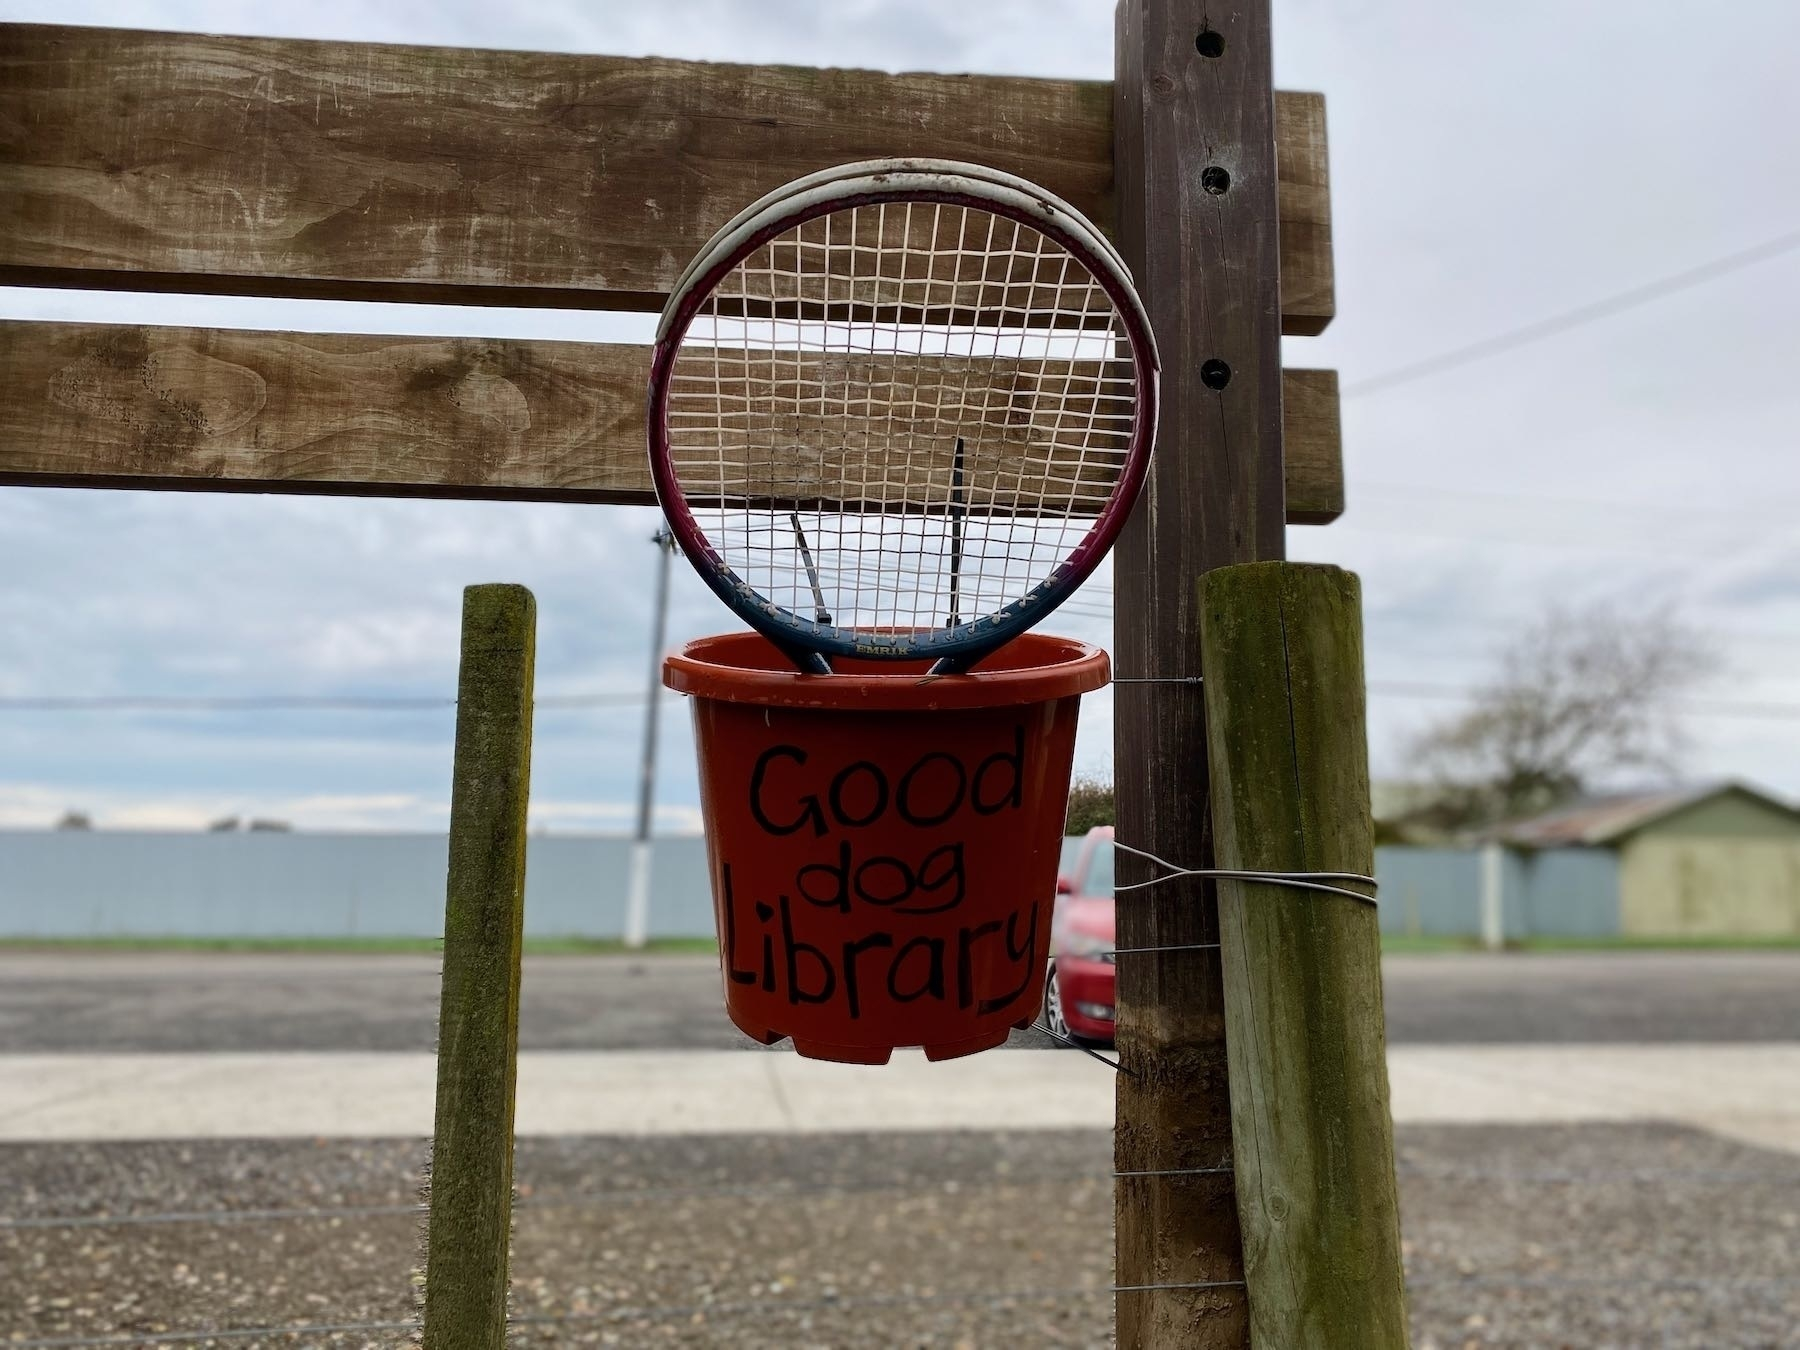 Bucket labelled Good Dog Library, with a tennis racket in it.